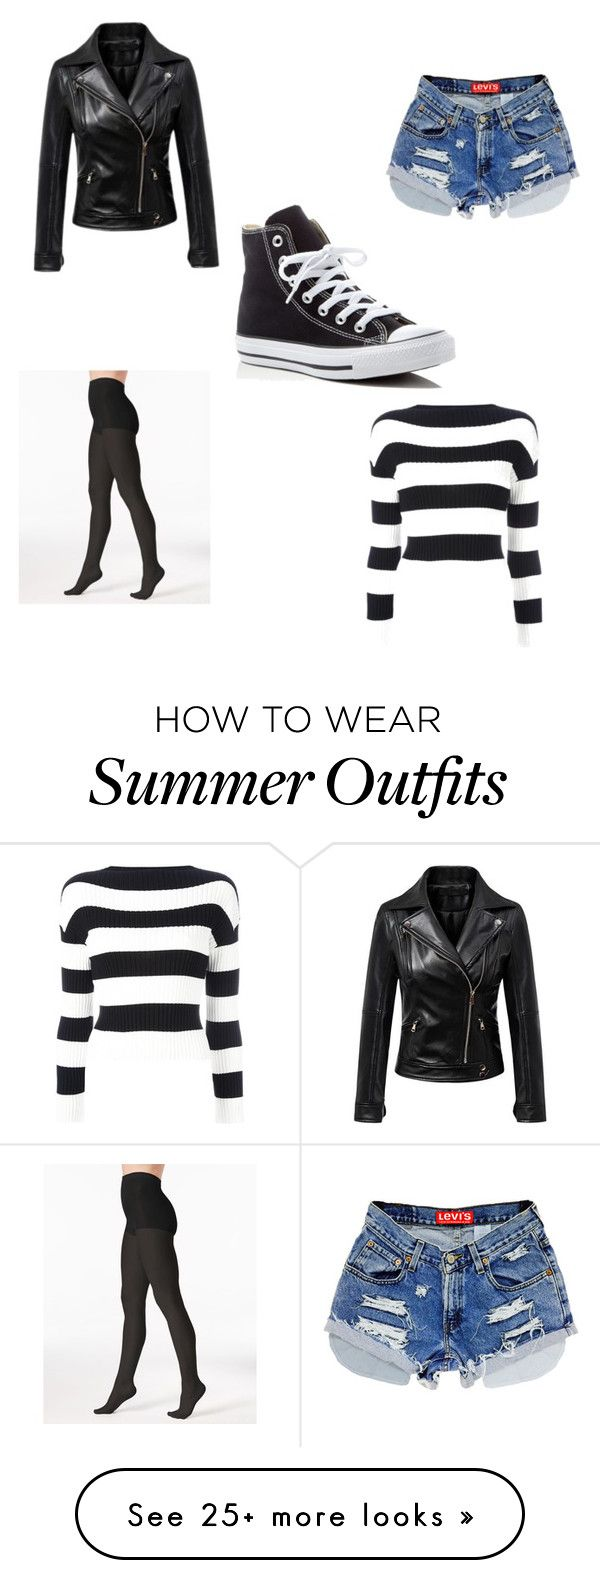 e1aa668a8c7c Summer Outfits